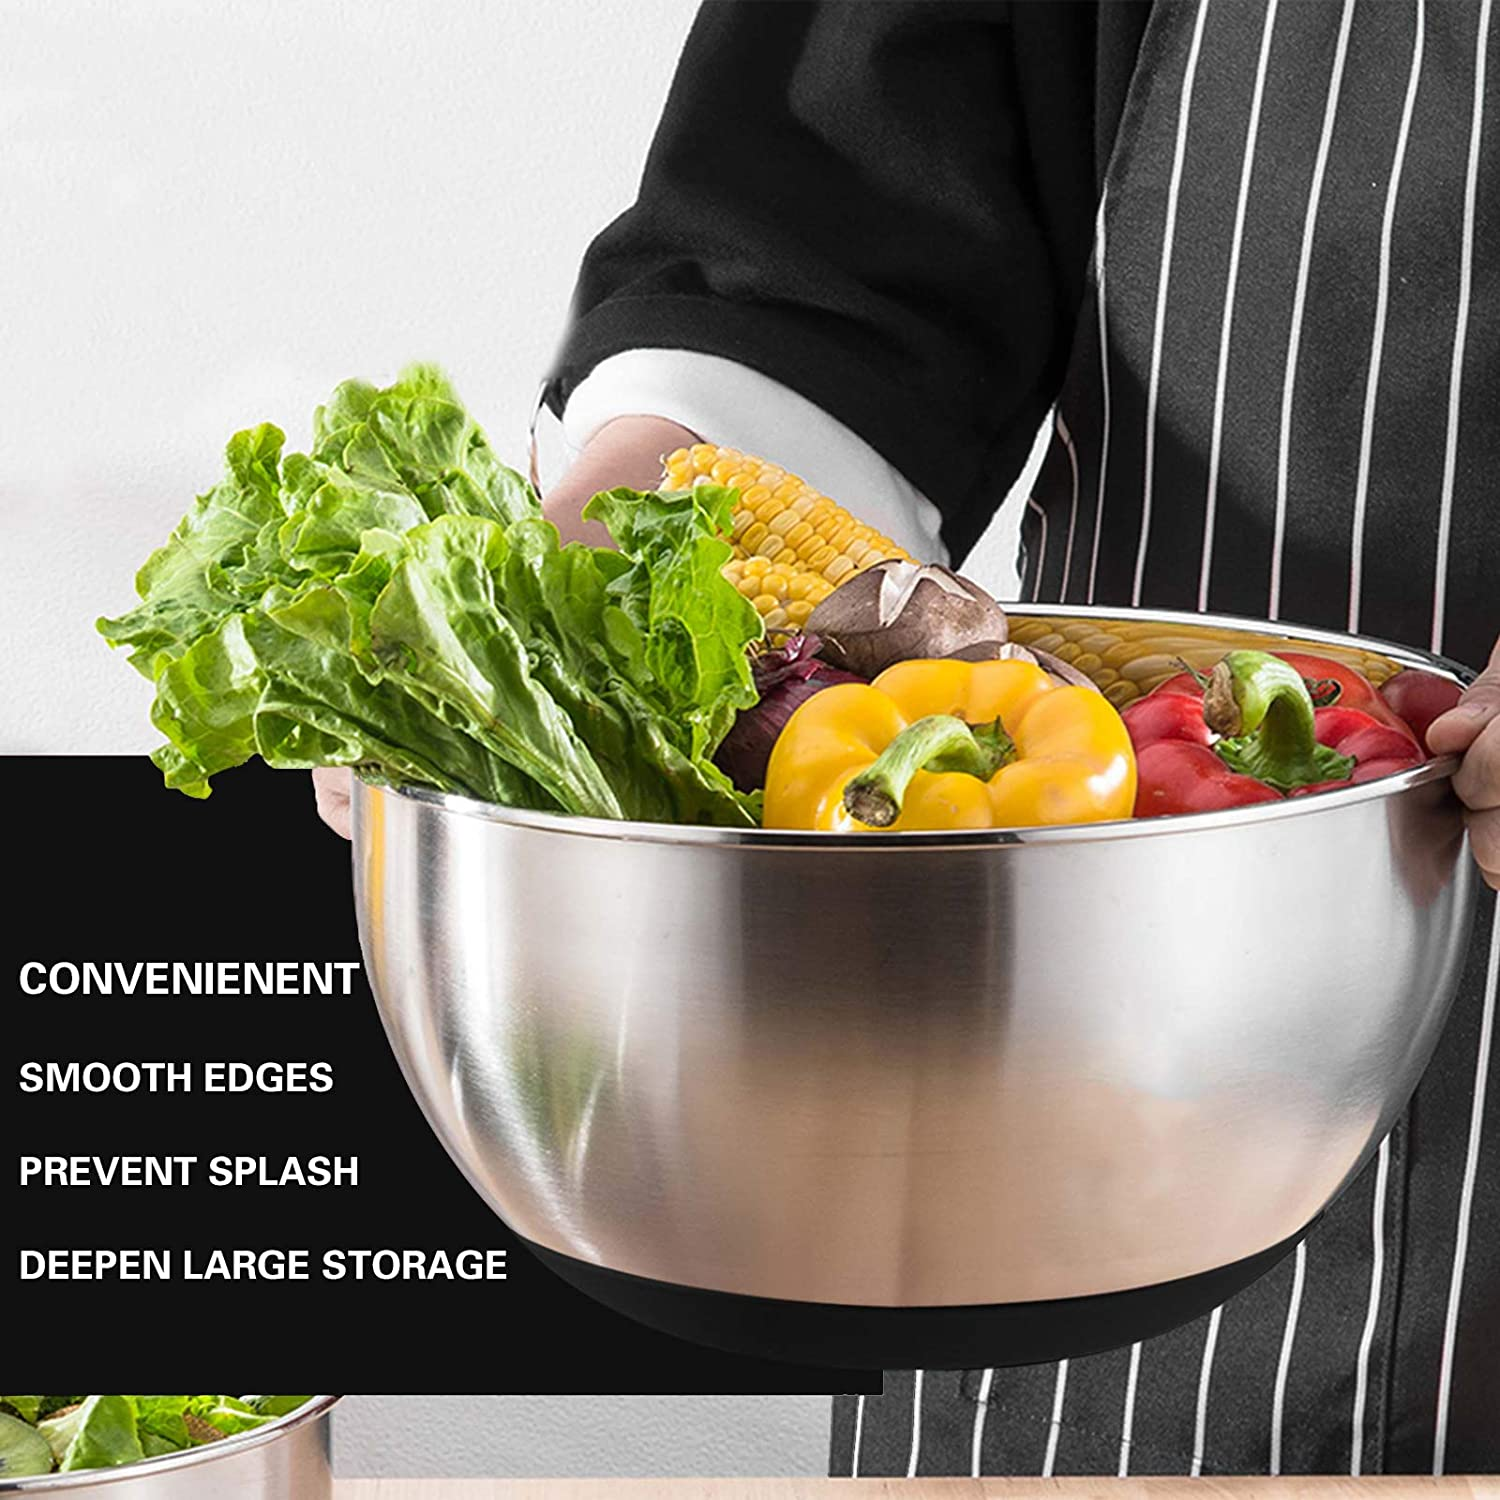 Mixing Bowls with Airtight Lids, 20 piece Stainless Steel Metal Nesting Bowls, AIKKIL Non-Slip Silicone Bottom, Size 7, 3.5, 2.5, 2.0,1.5, 1,0.67QT Great for Mixing, Baking, Serving (Black)